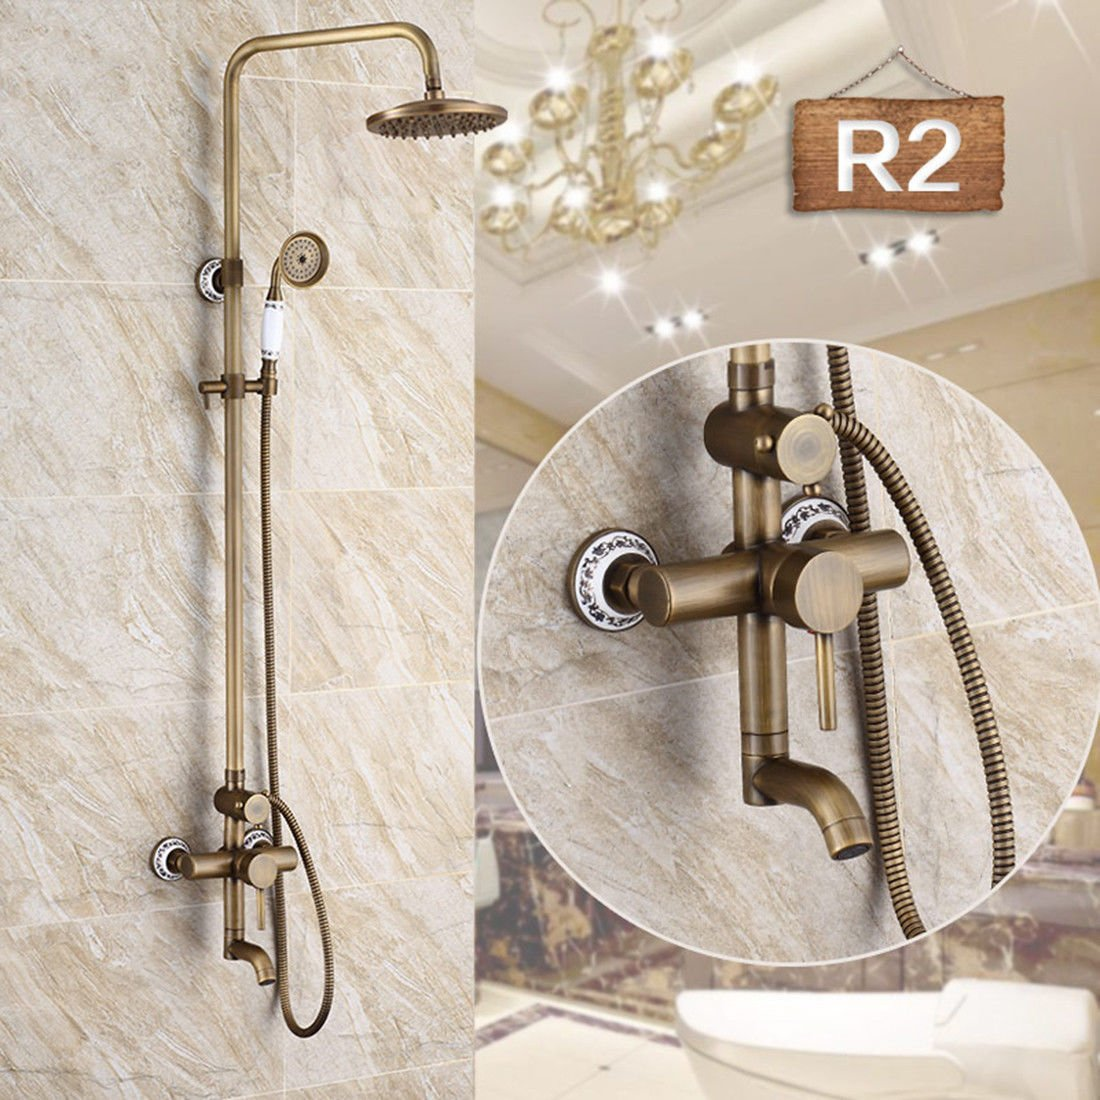 R2 Hlluya Professional Sink Mixer Tap Kitchen Faucet Faucets antique shower kit copper cold water faucet bathroom with lifting shower bathroom antique wall-style shower kit,R1